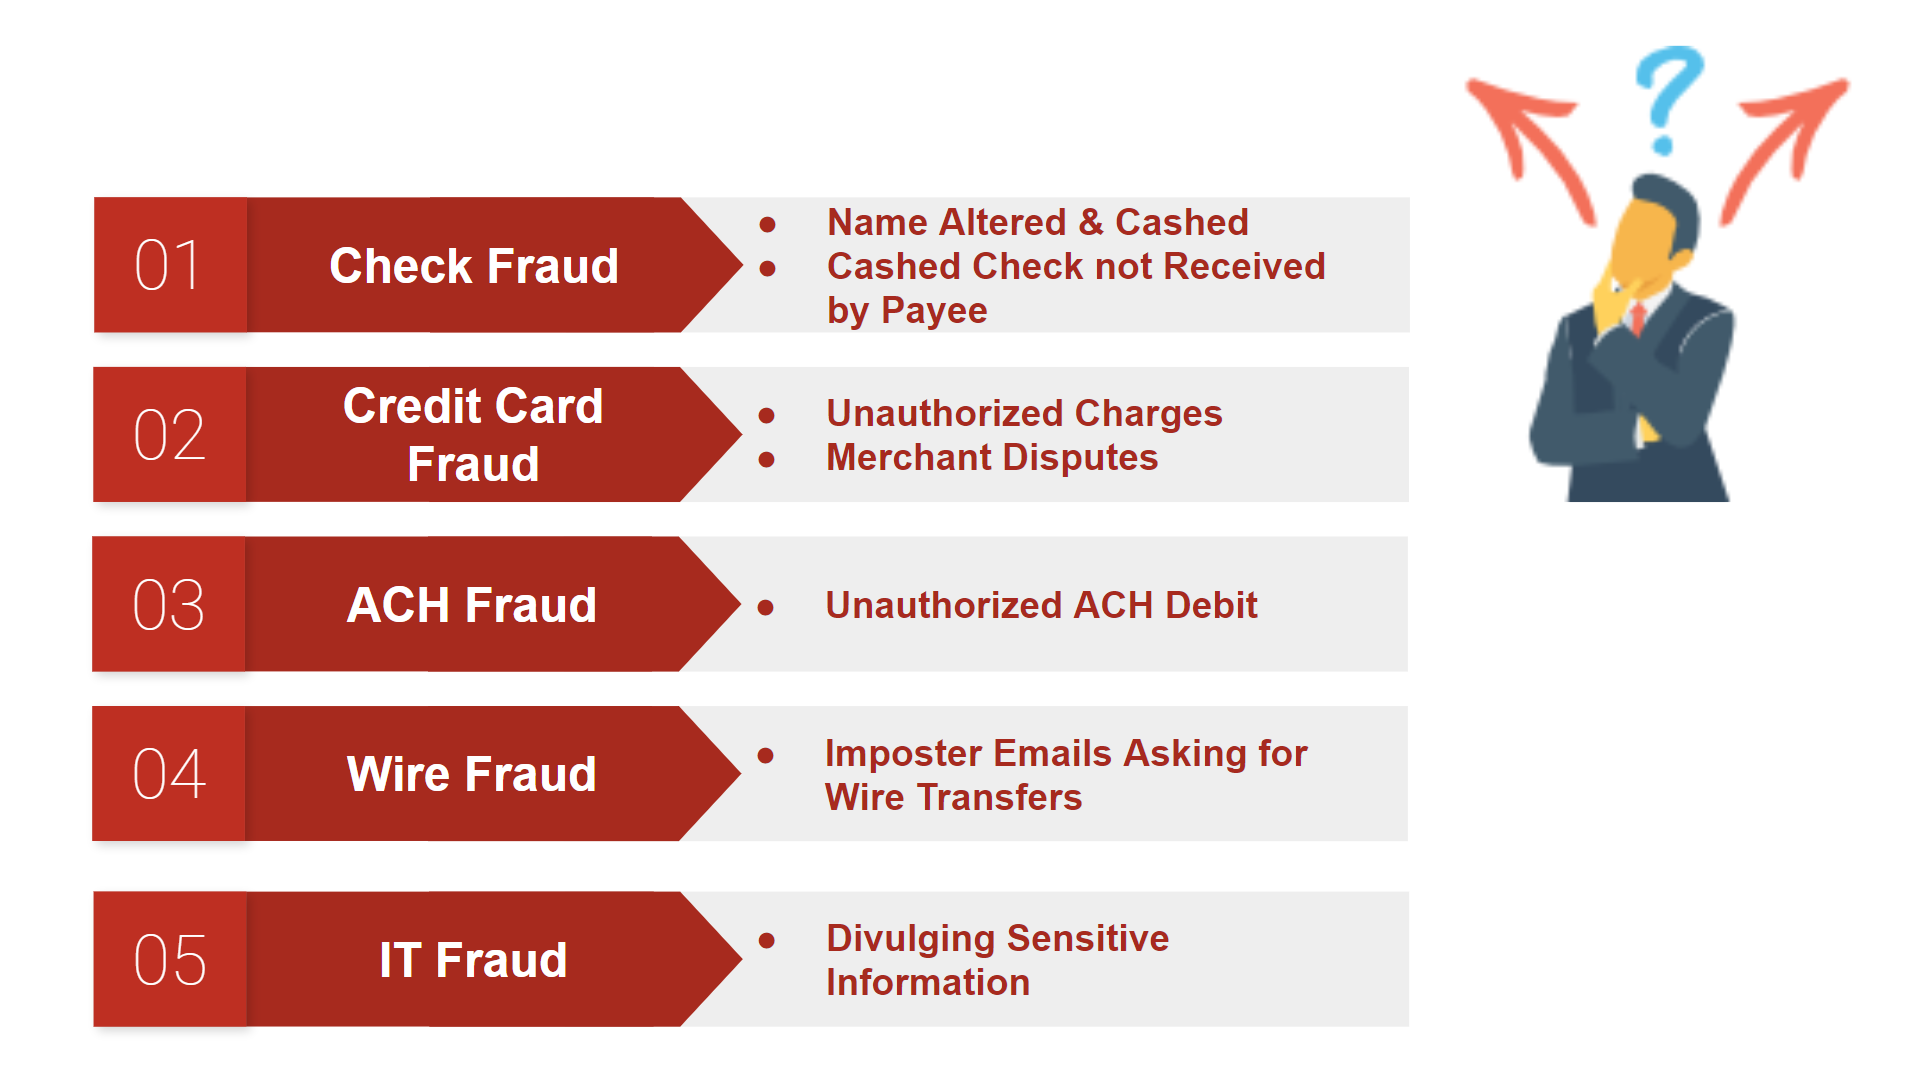 Most Common Payment Frauds in B2B